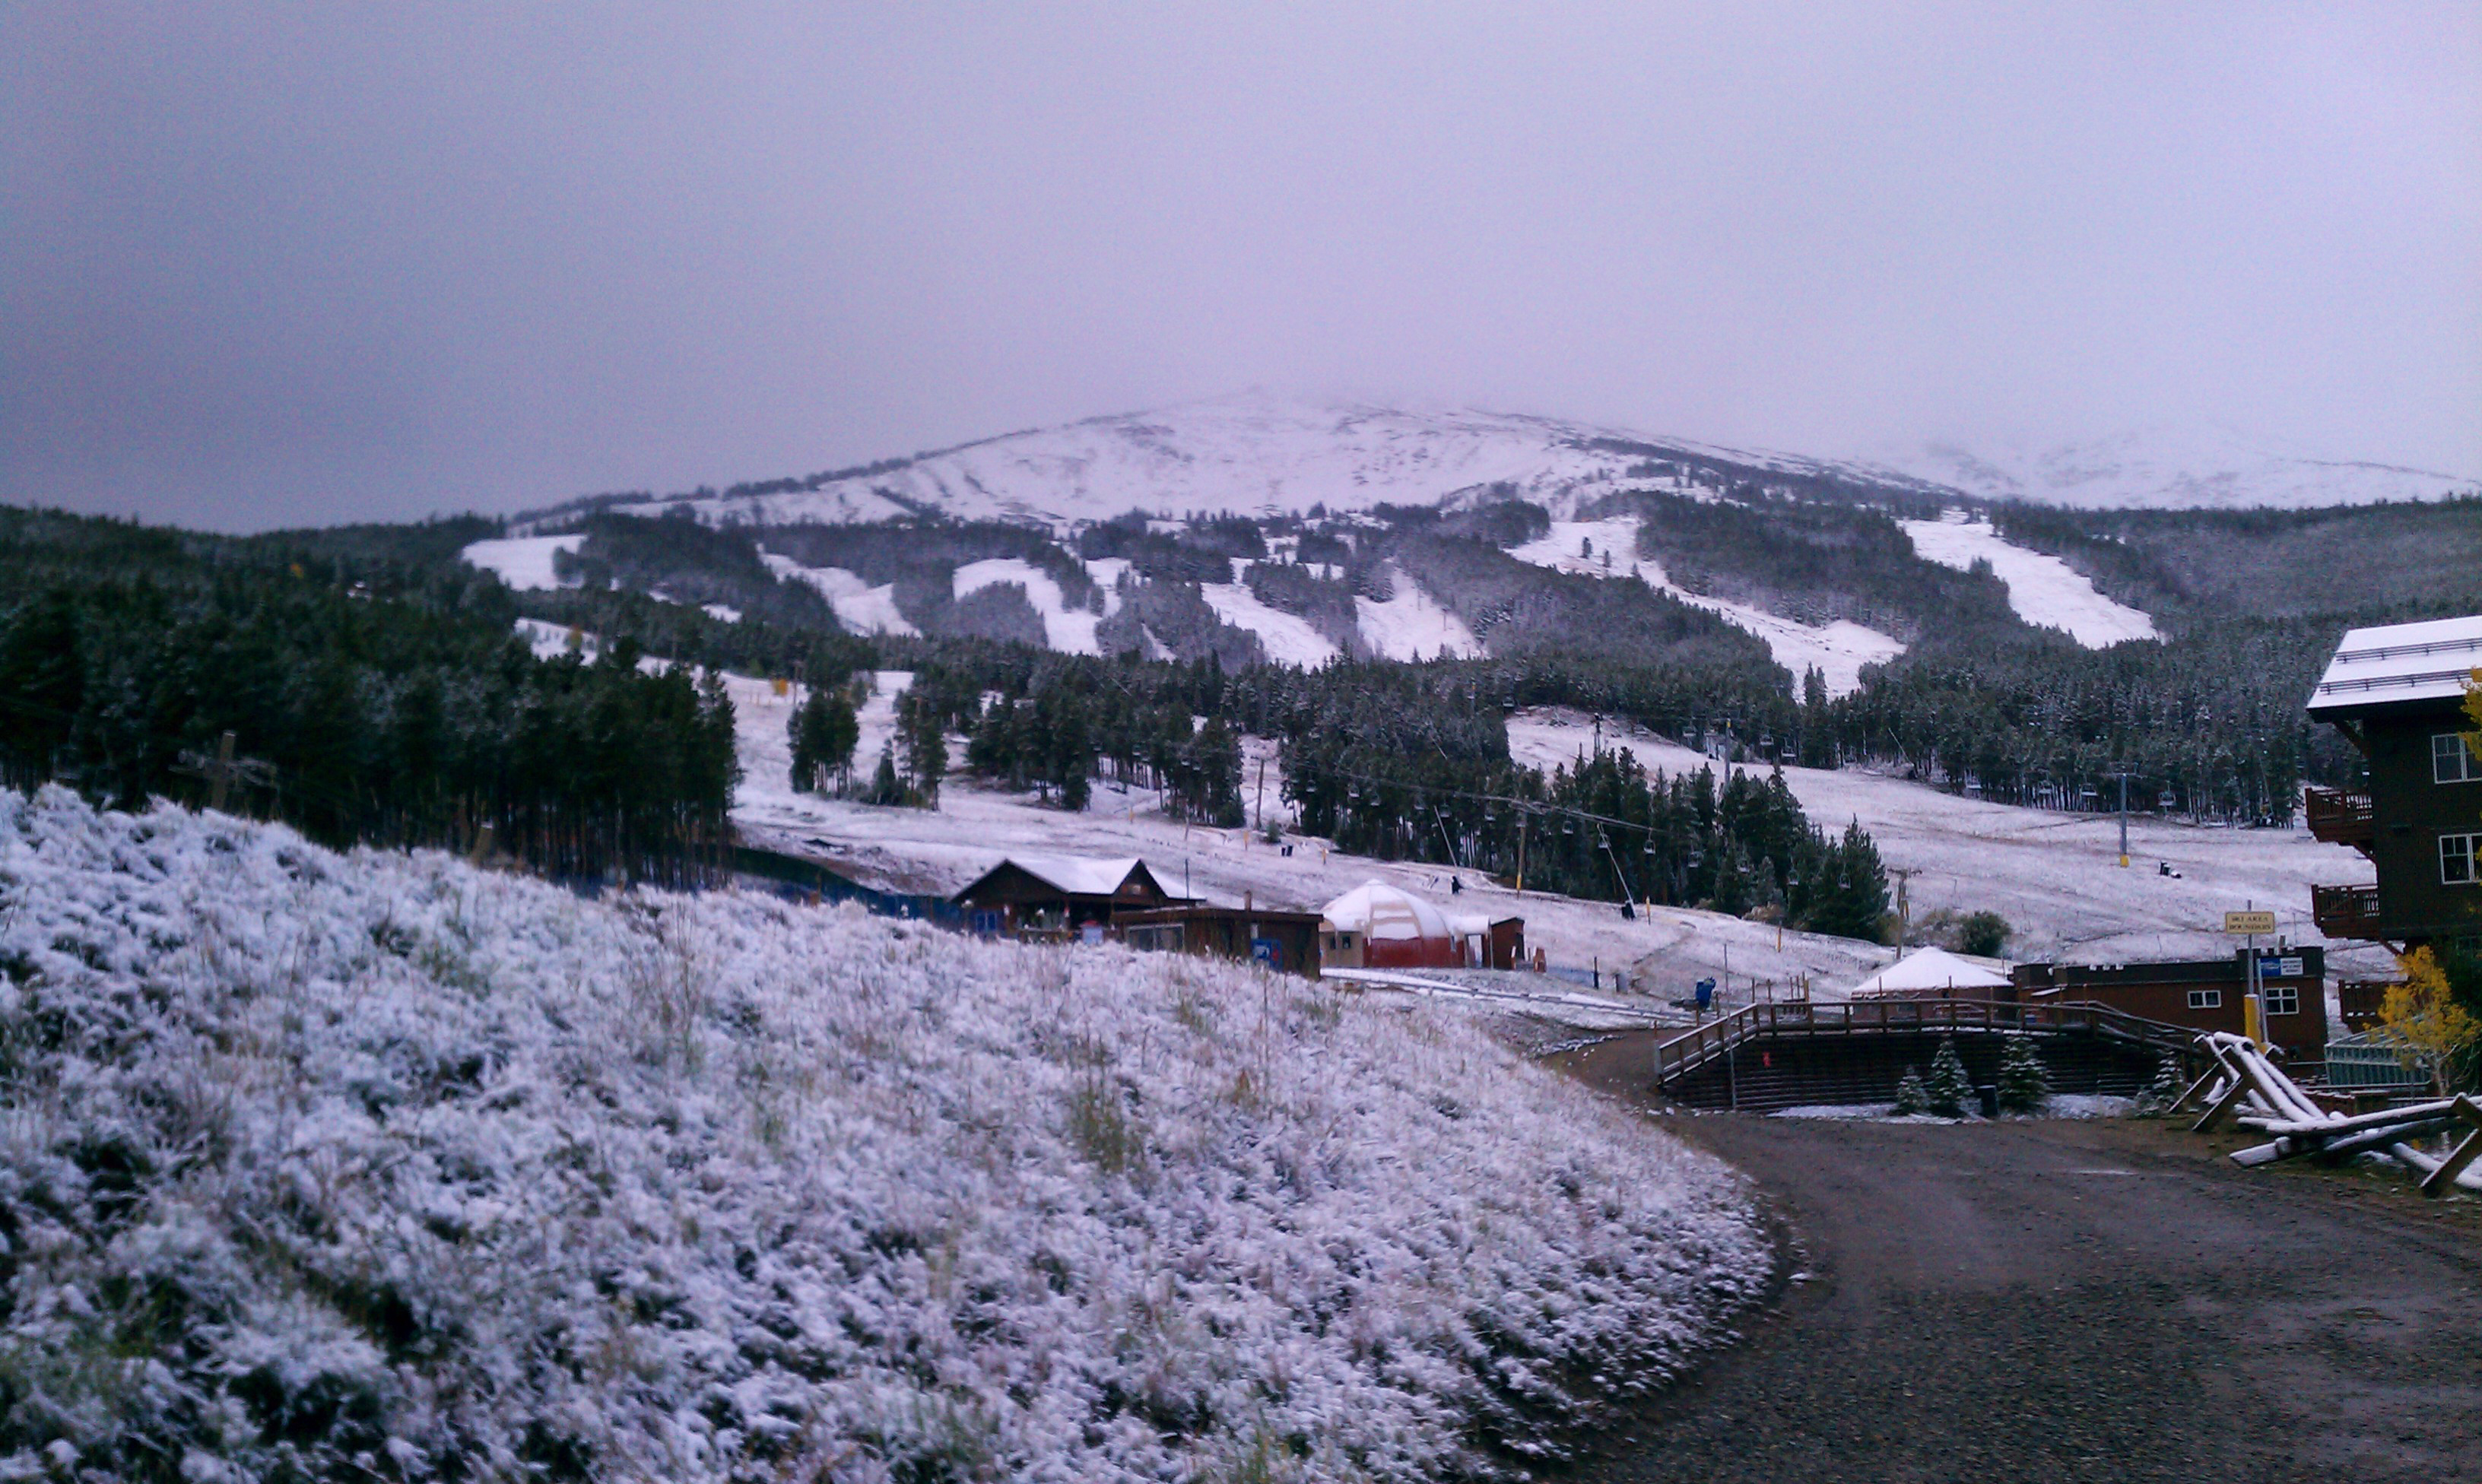 Peak 8 shows off the dusting